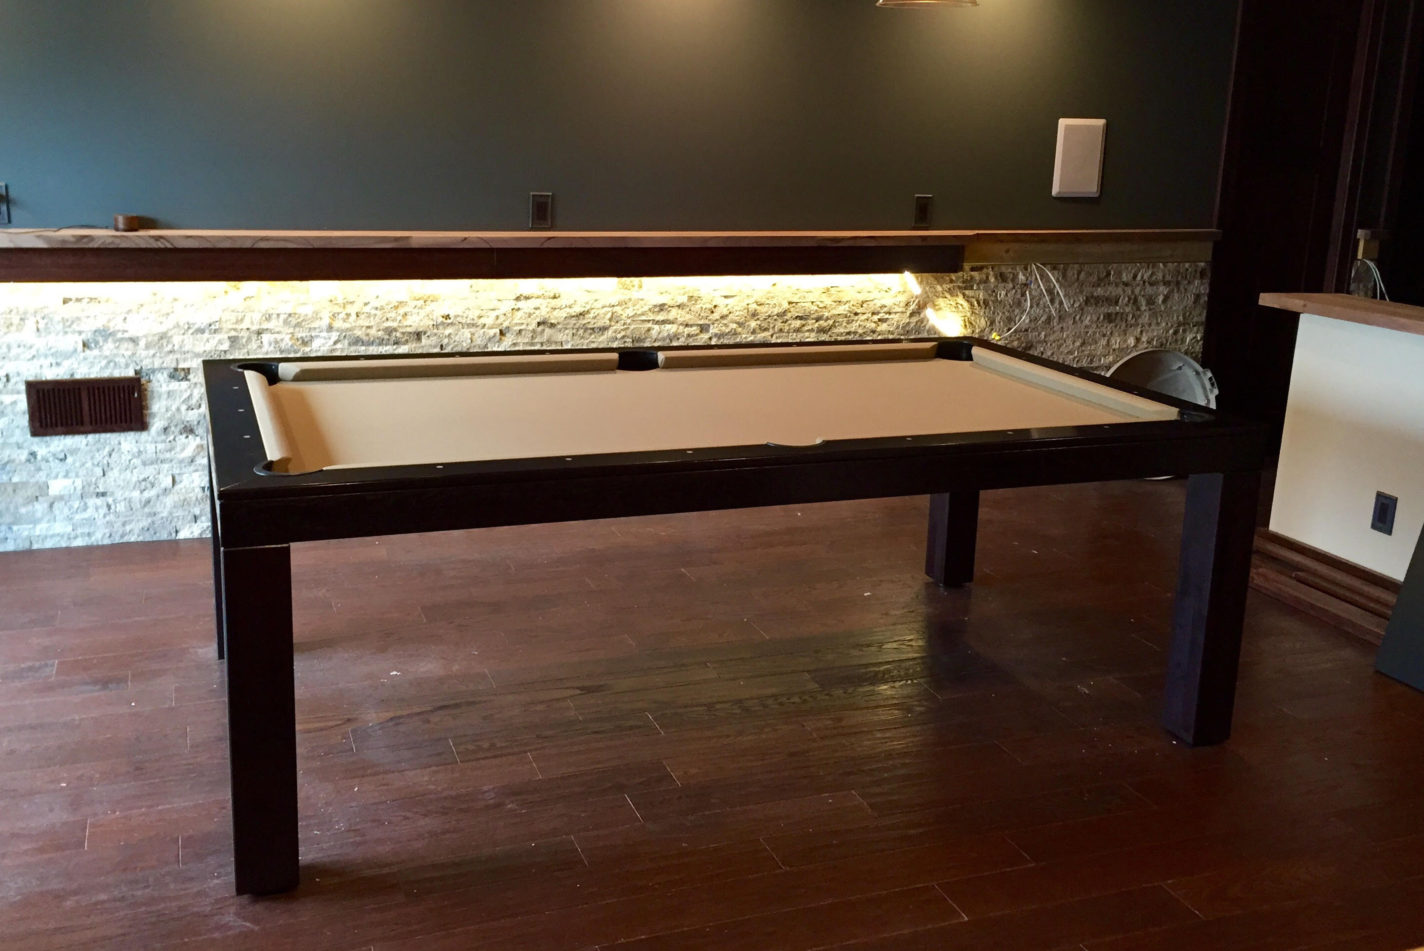 Vision Convertible Pool Table, Wisconsin